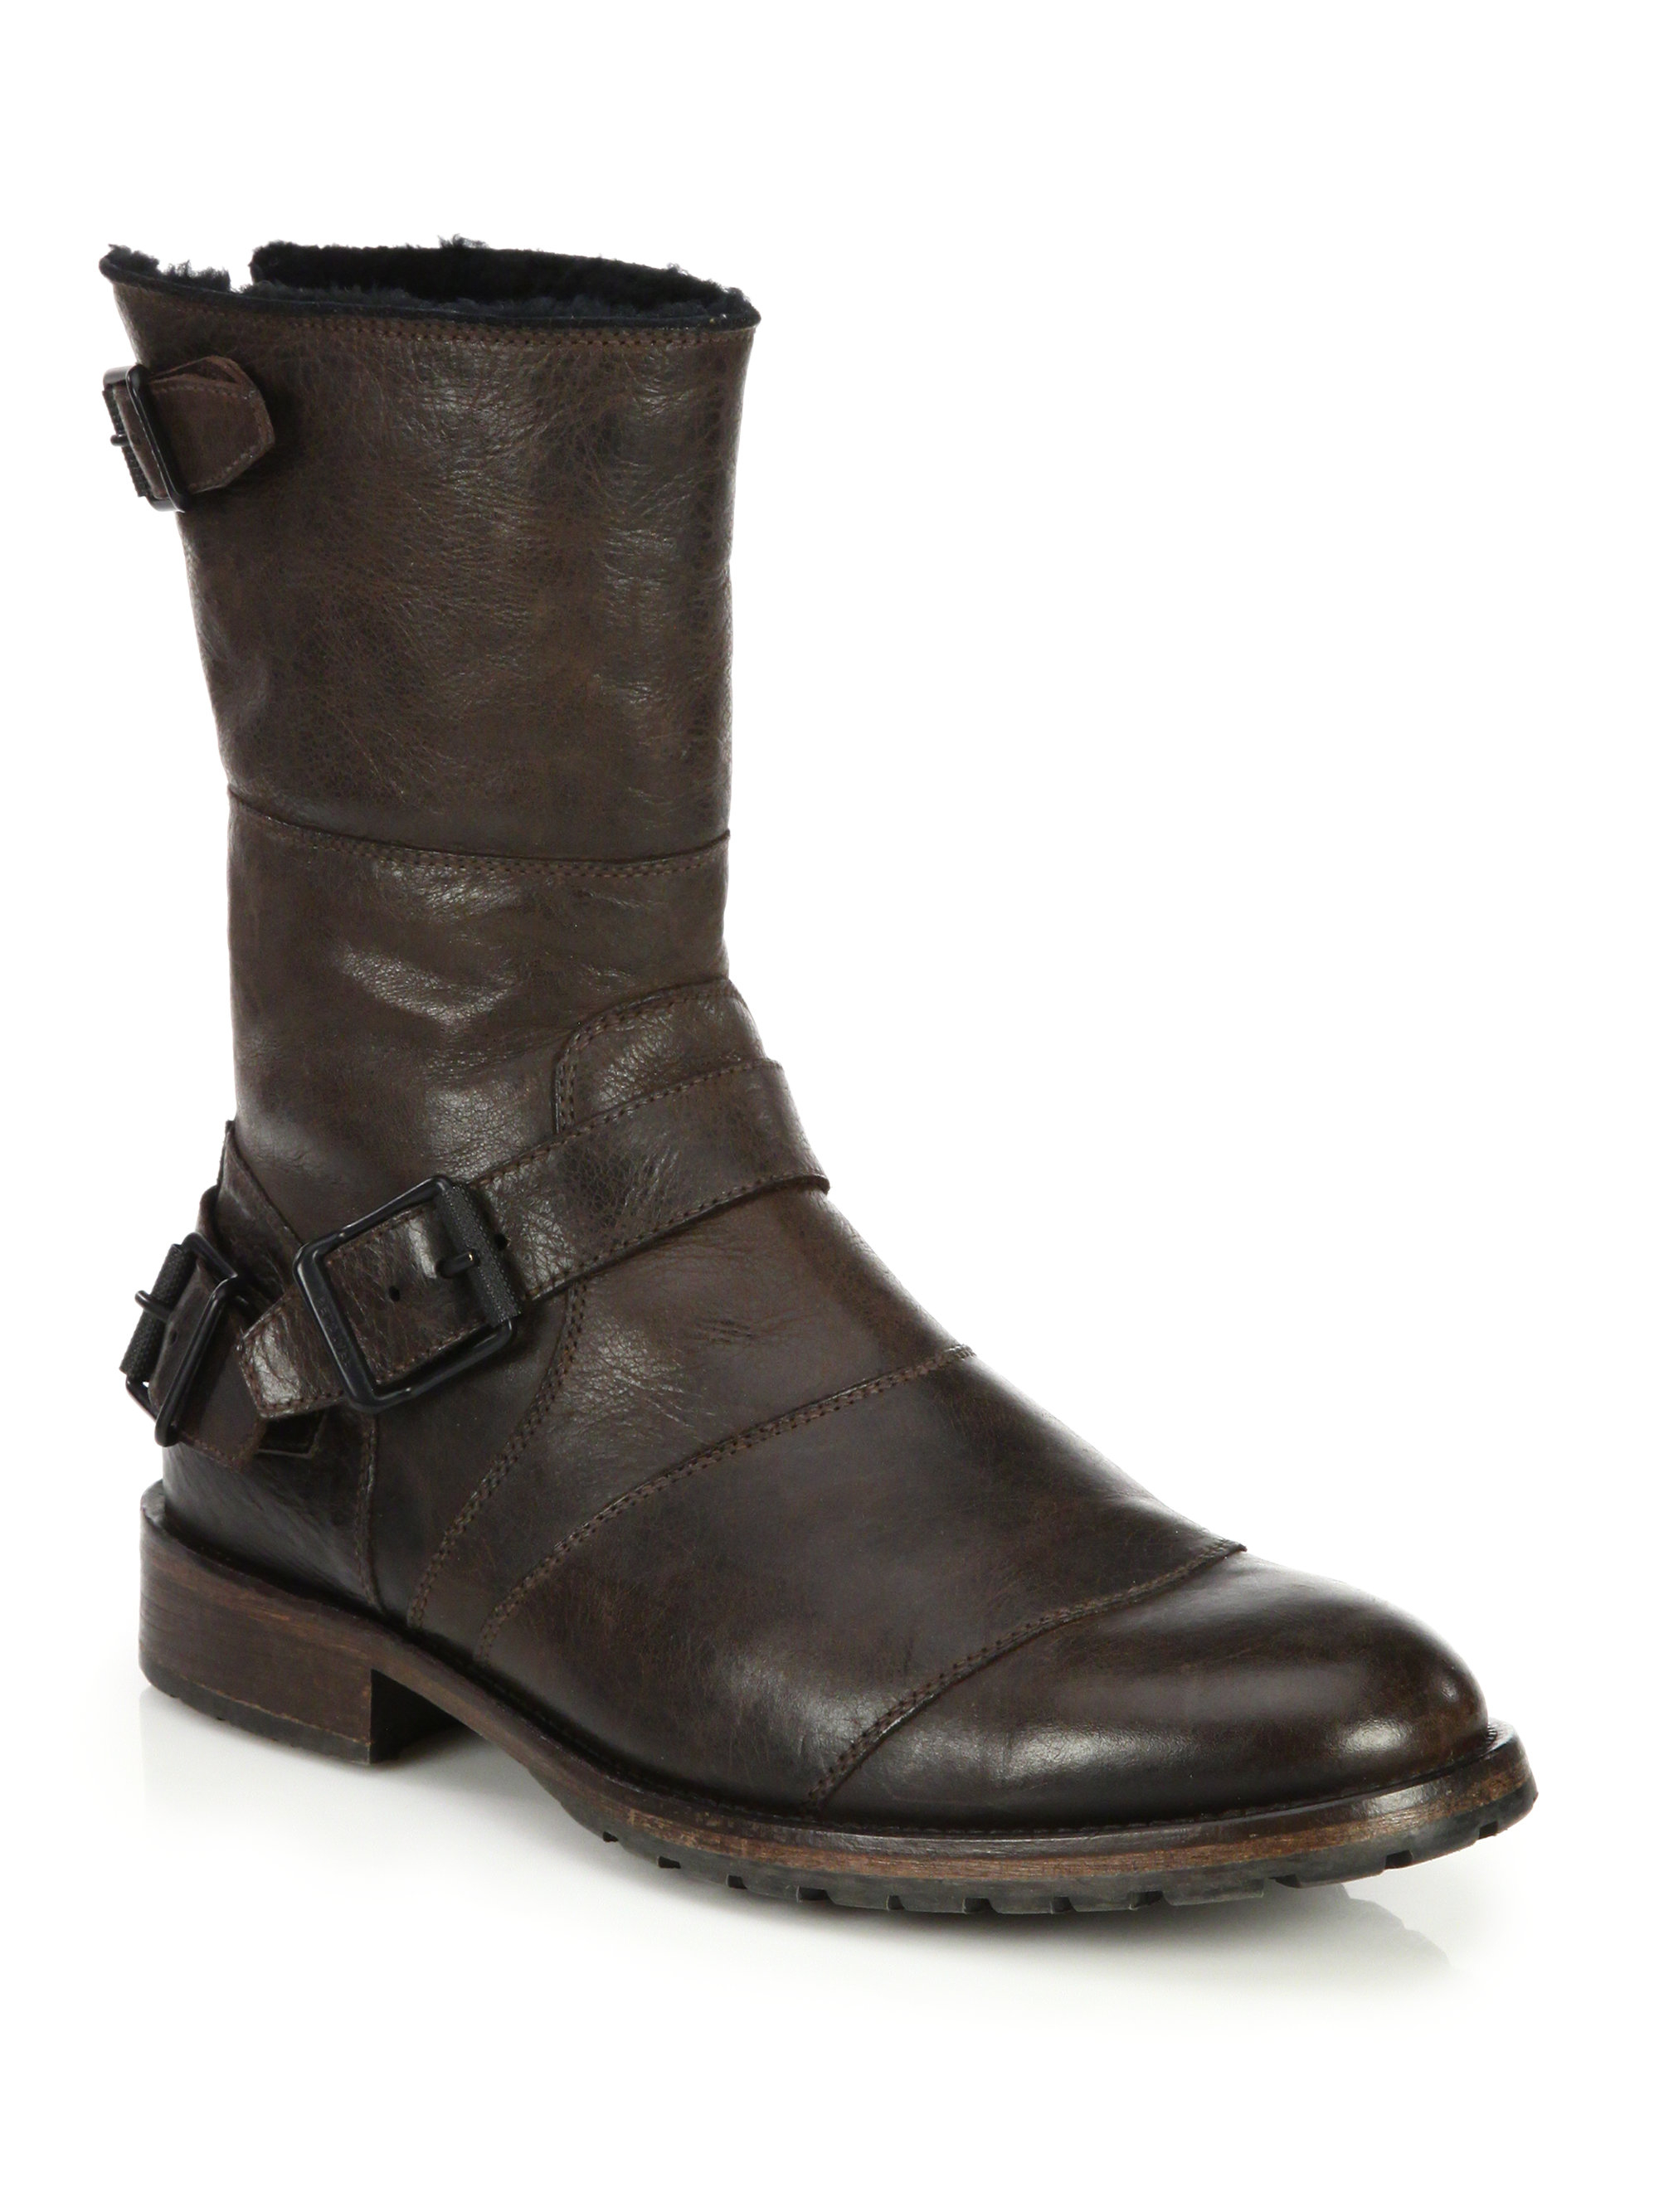 belstaff benhurst shearling lined leather boots in black